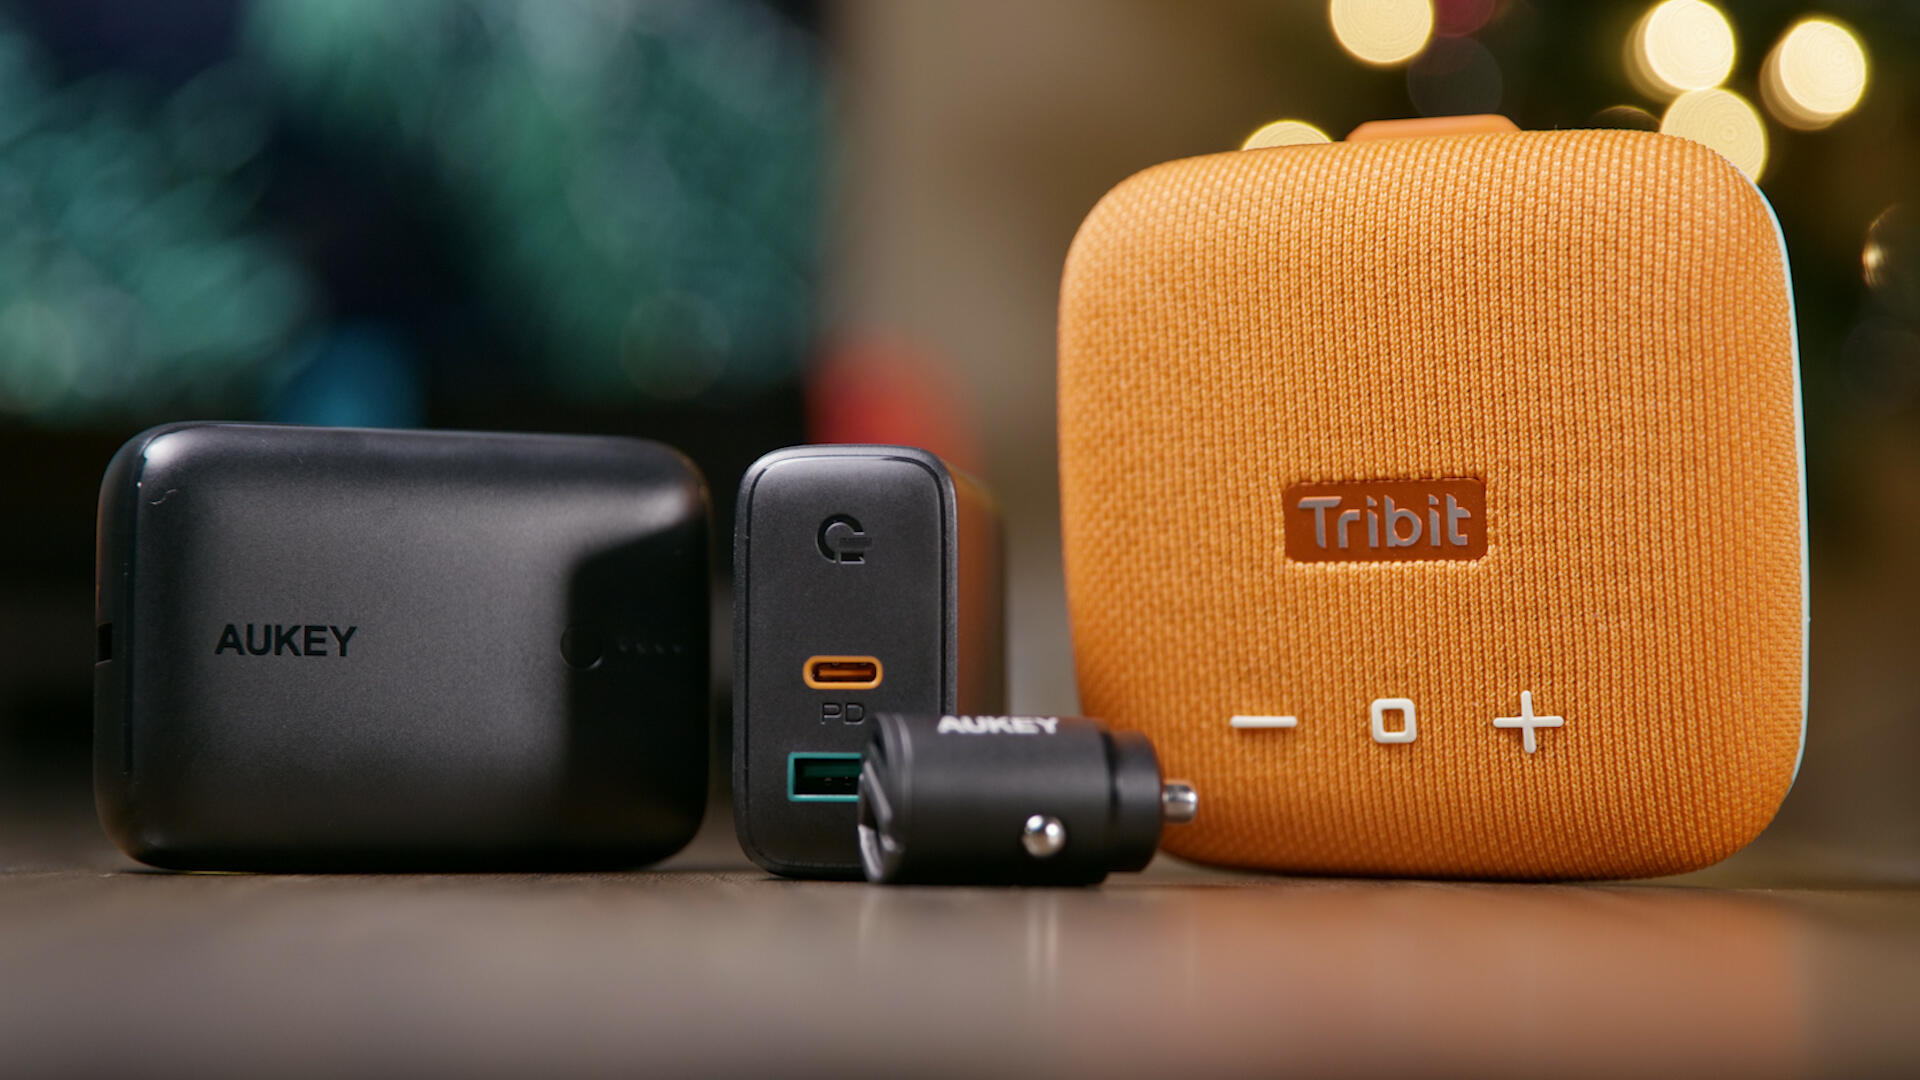 Video: Best travel tech gifts for your staycation